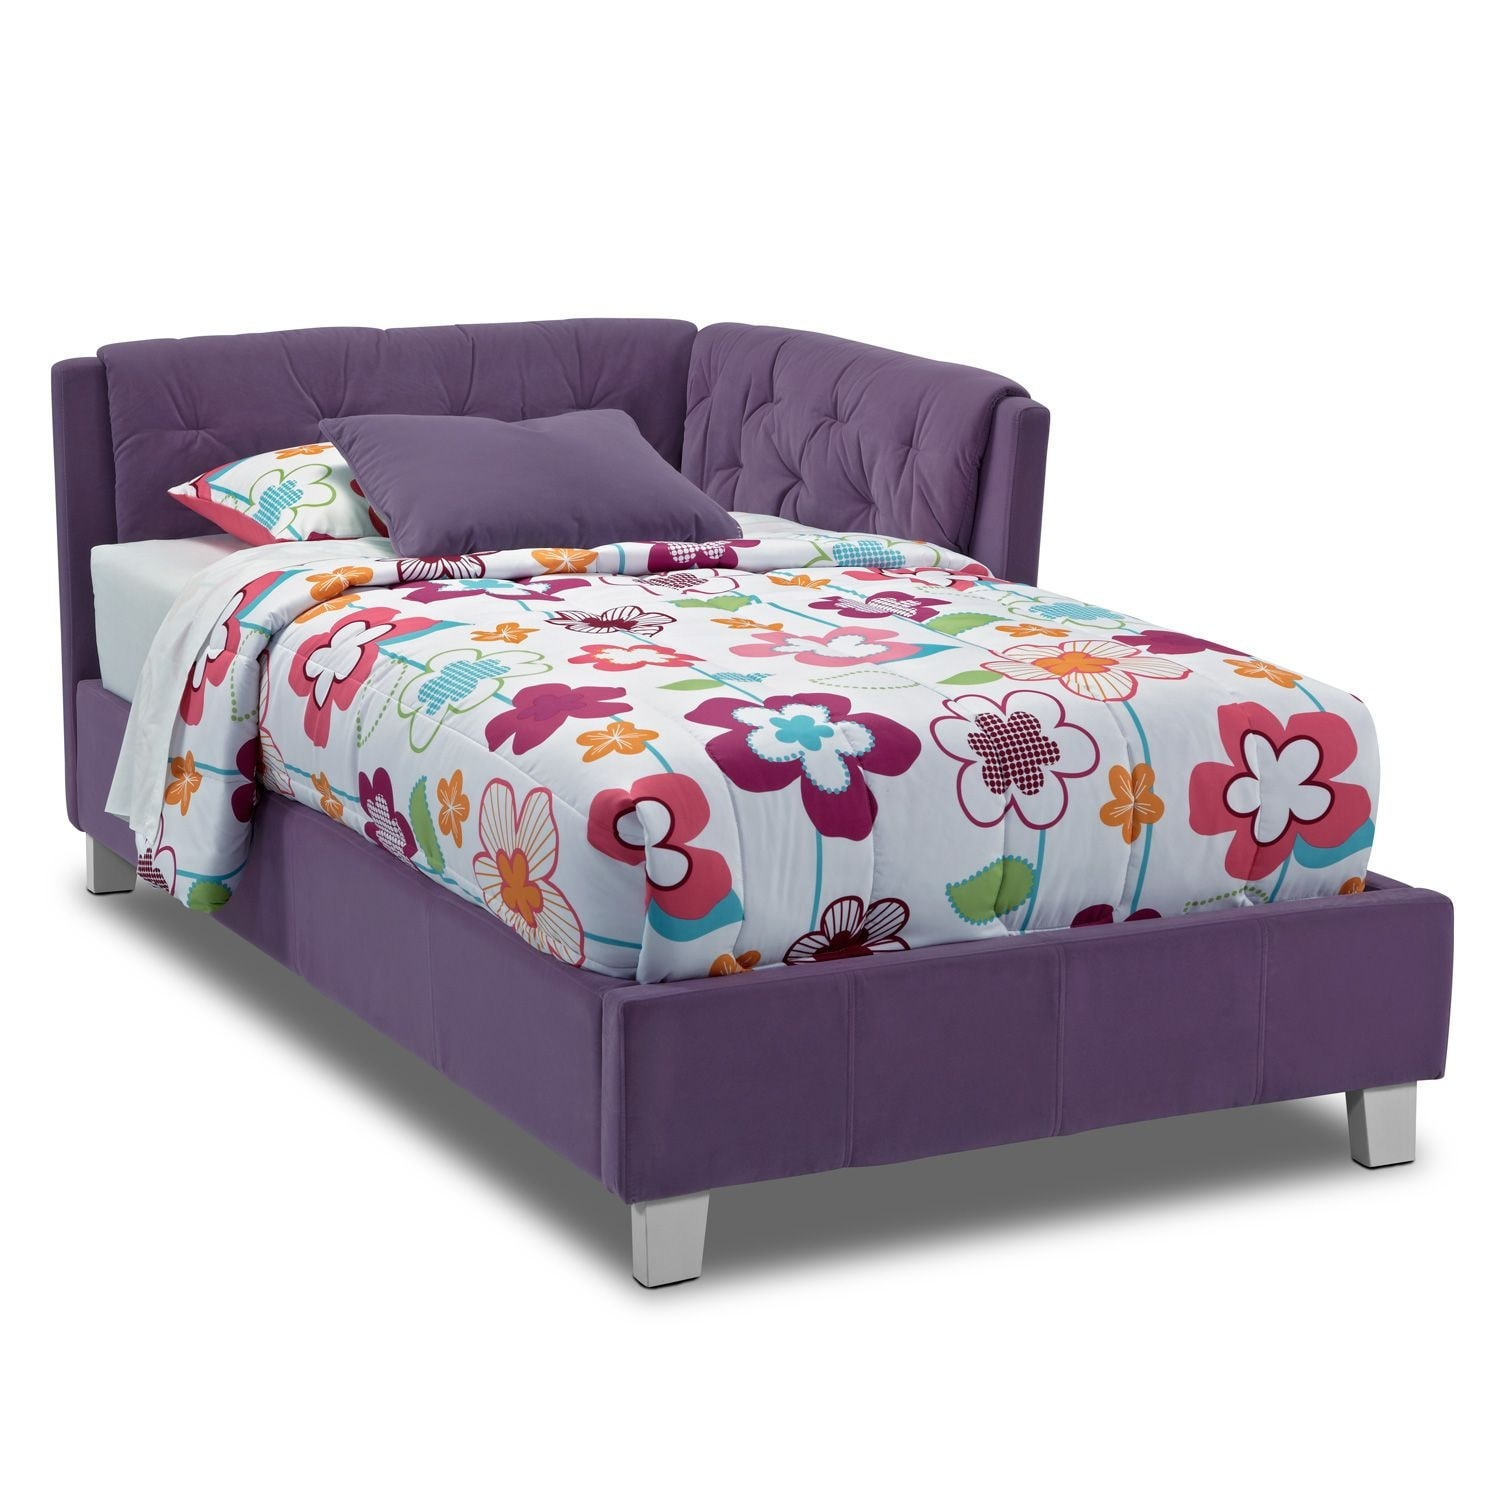 Kids Furniture - Jordan III Twin Corner Bed